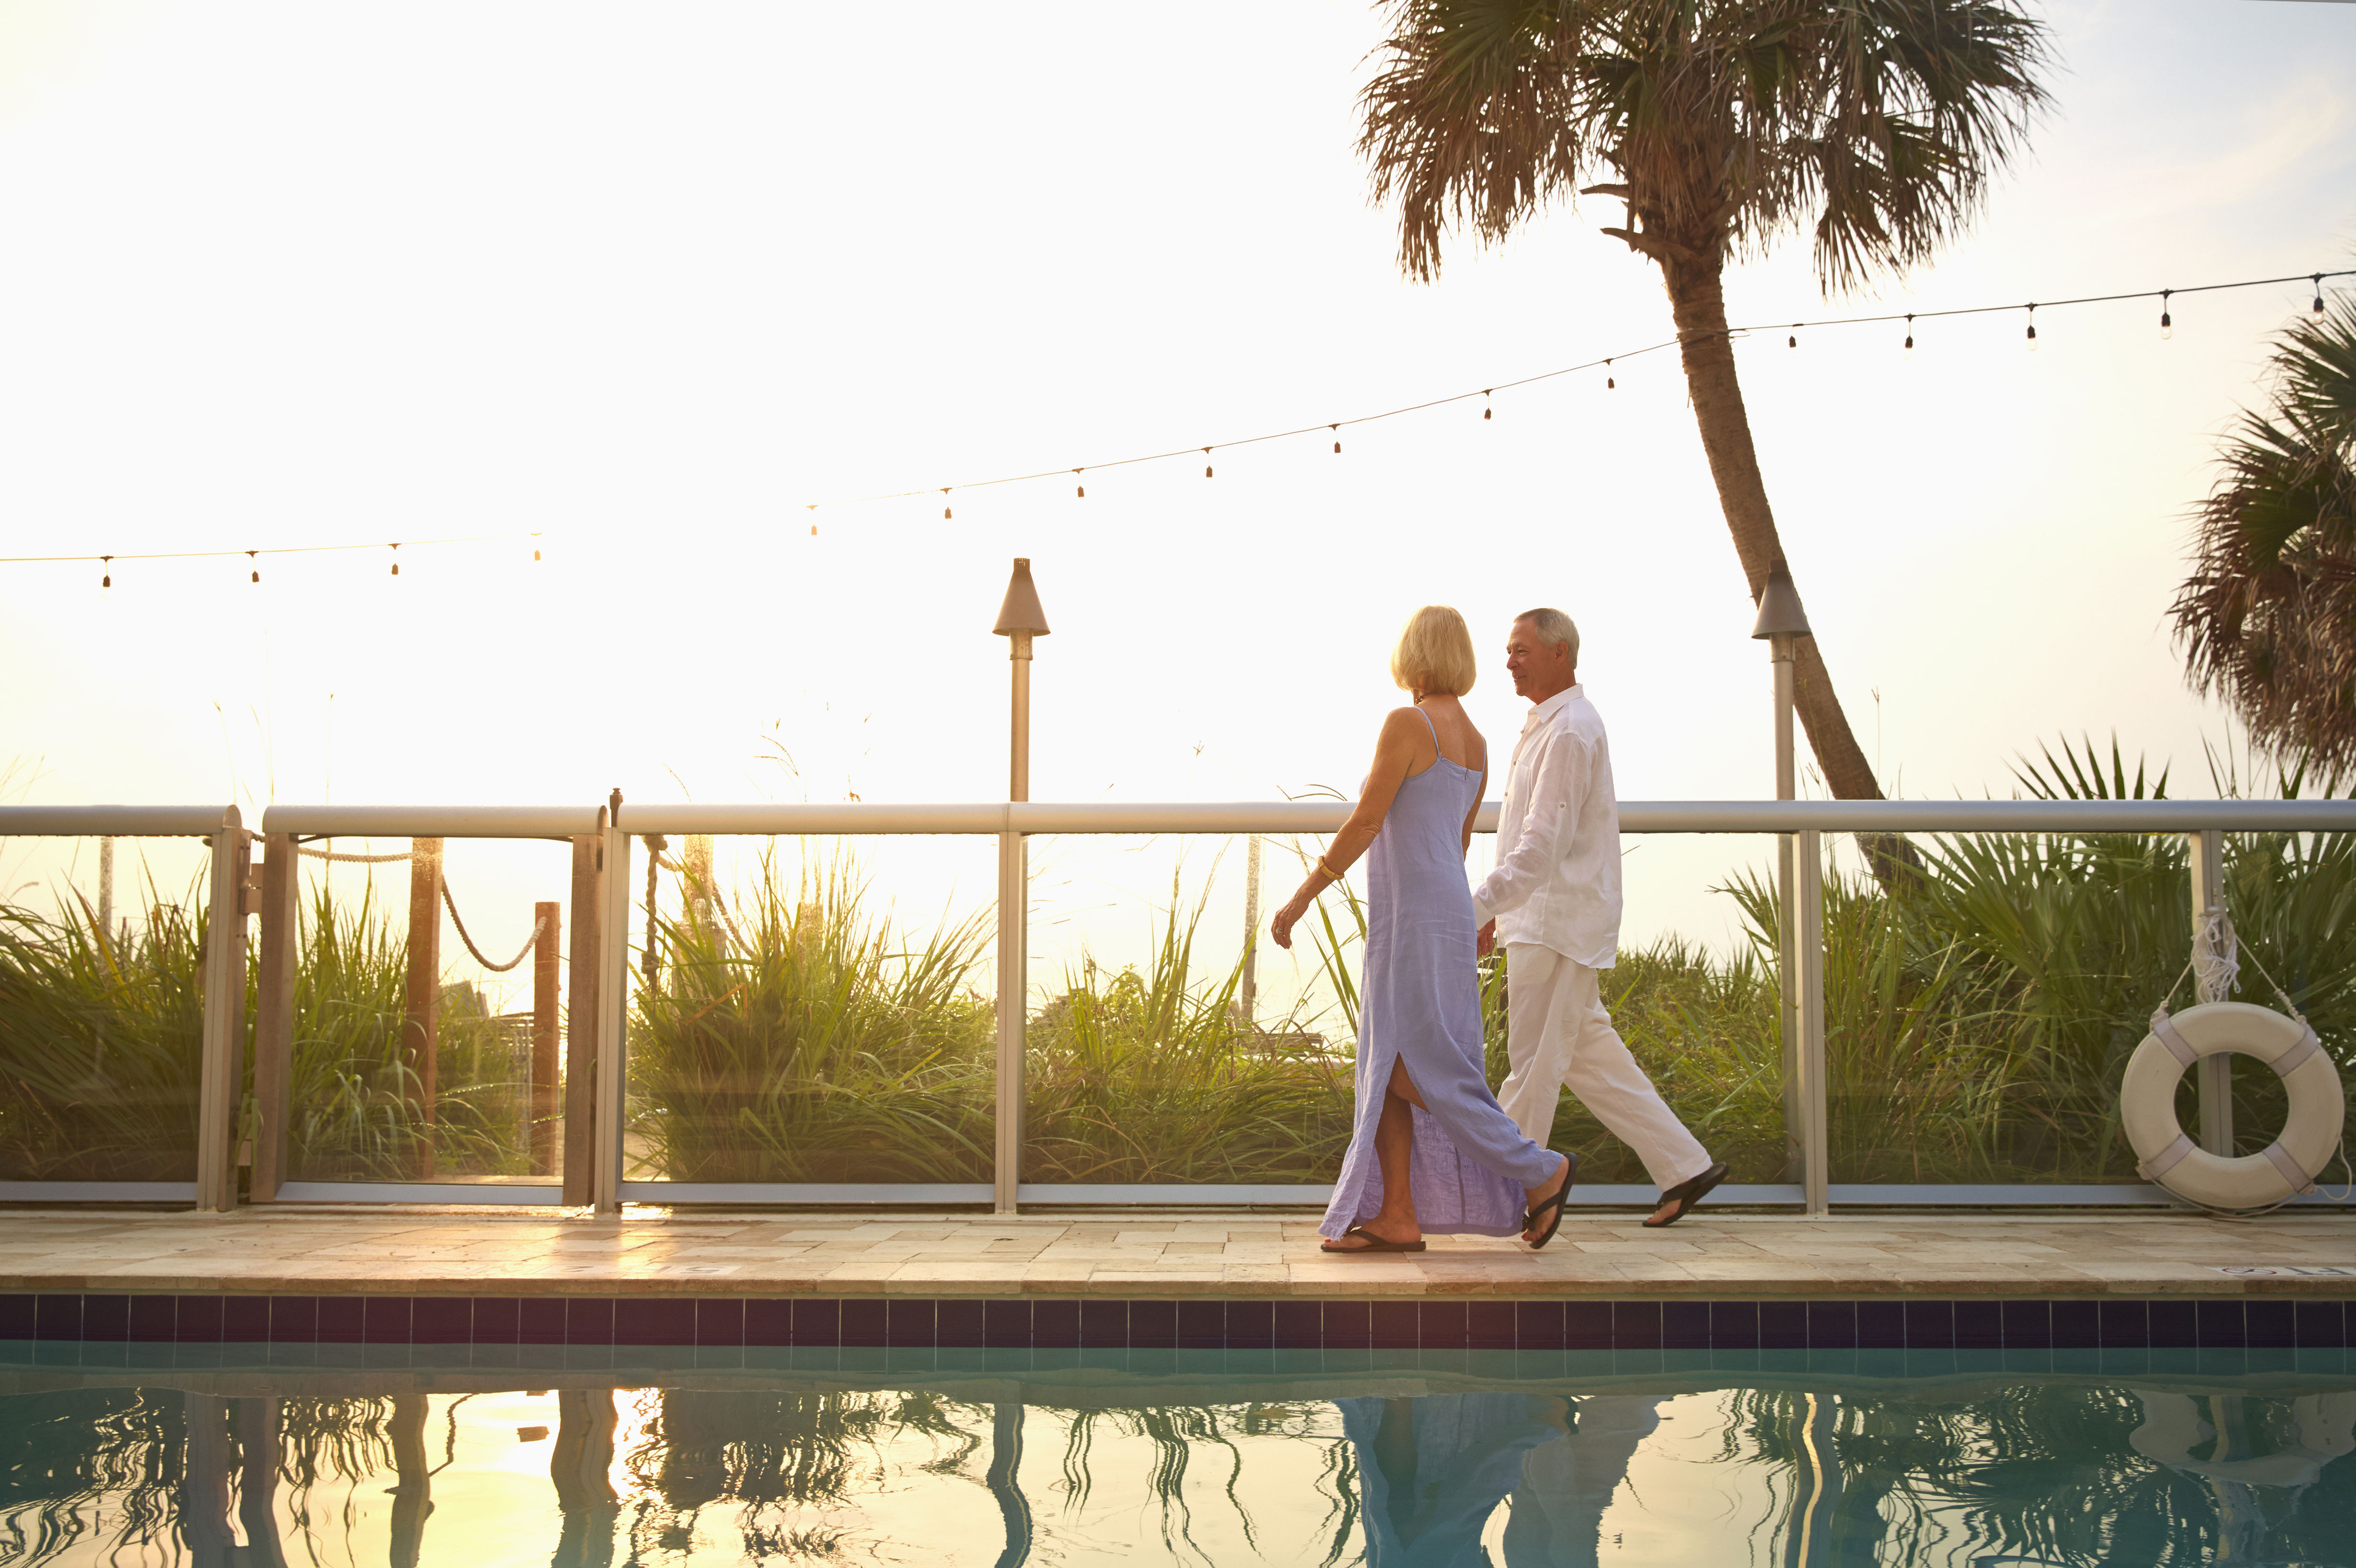 5 Reasons You Should Consider a Stress-Free Vacation at an All-Inclusive Resort